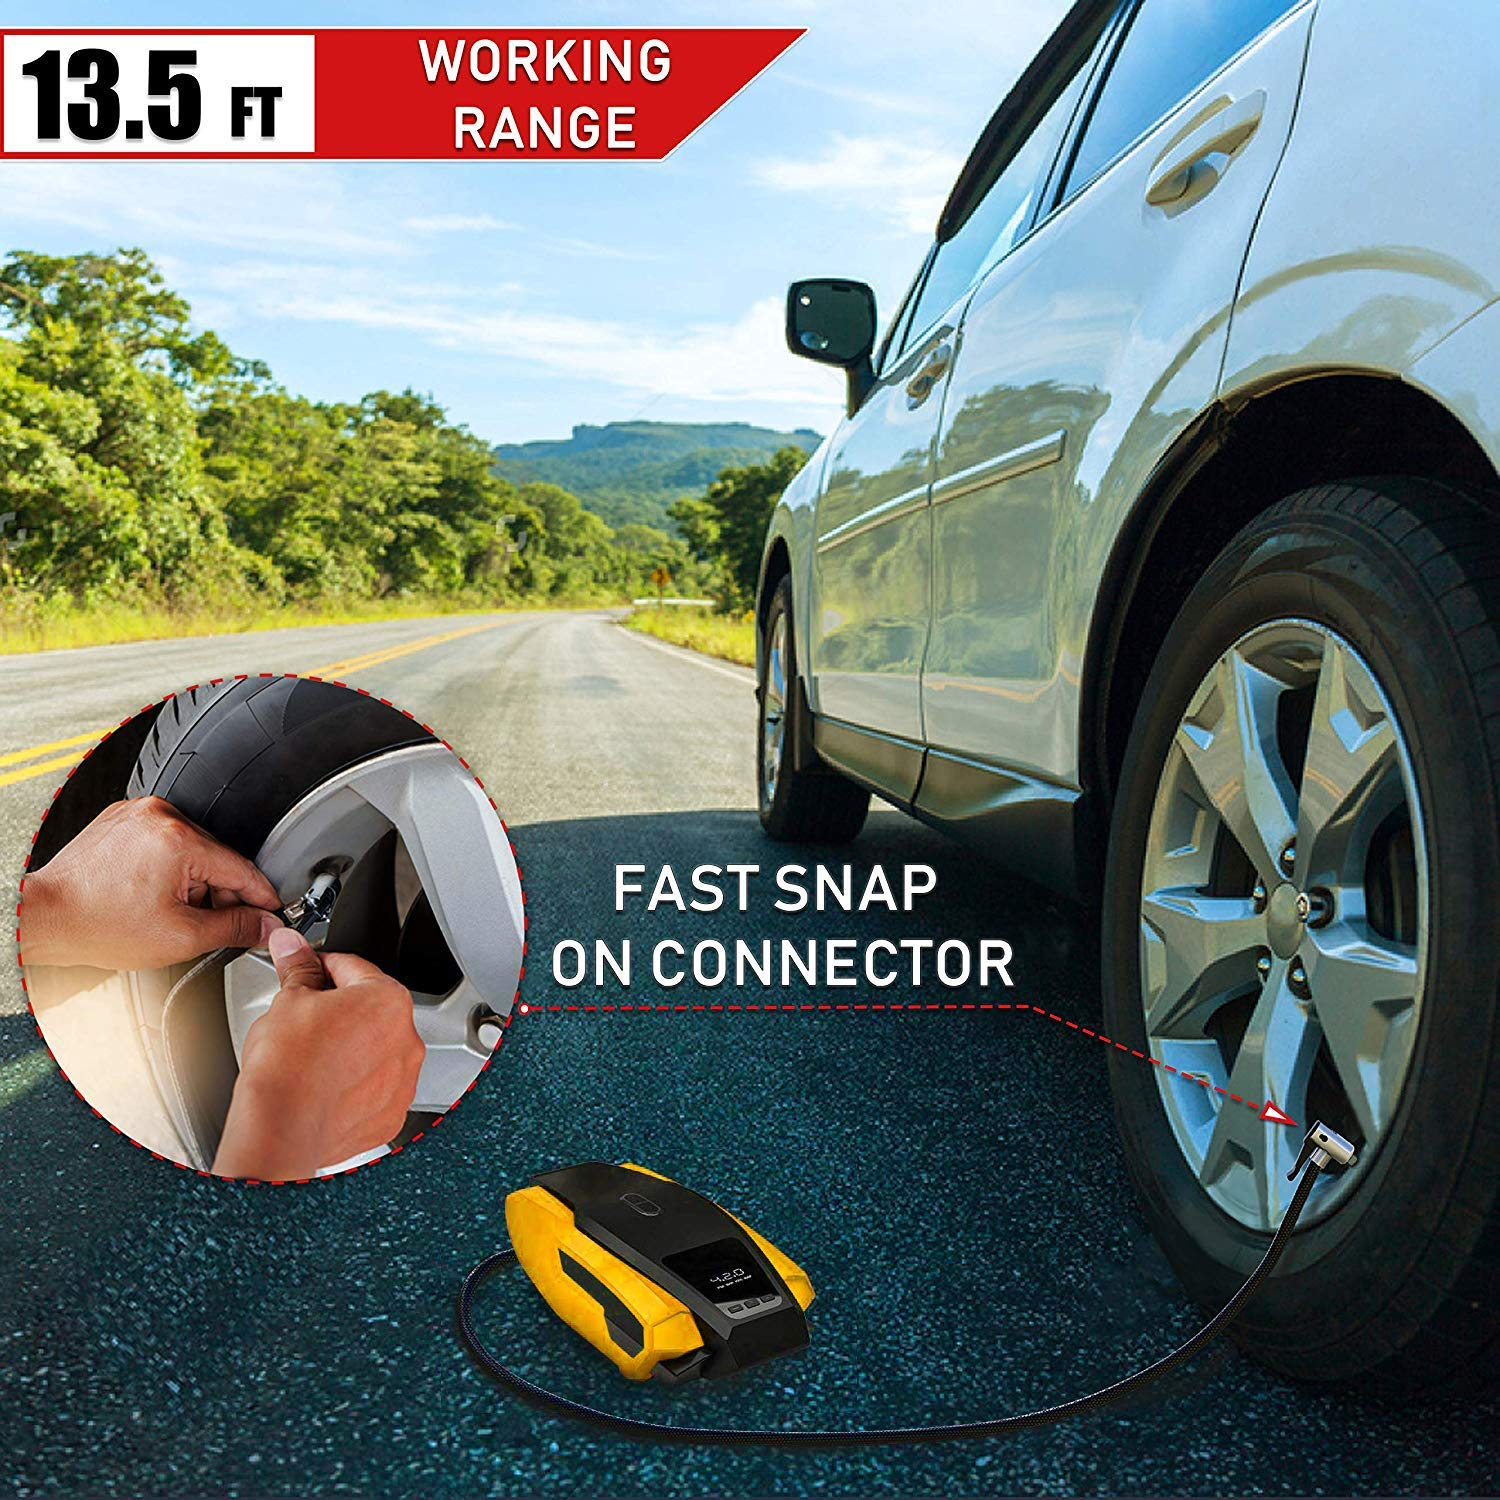 Favoto Car Auto Tyre Inflator Air Compressor Pump Portable with DIgital Pressure Gauge DC12V for Car SUV MPV or Ball Airbed Bike